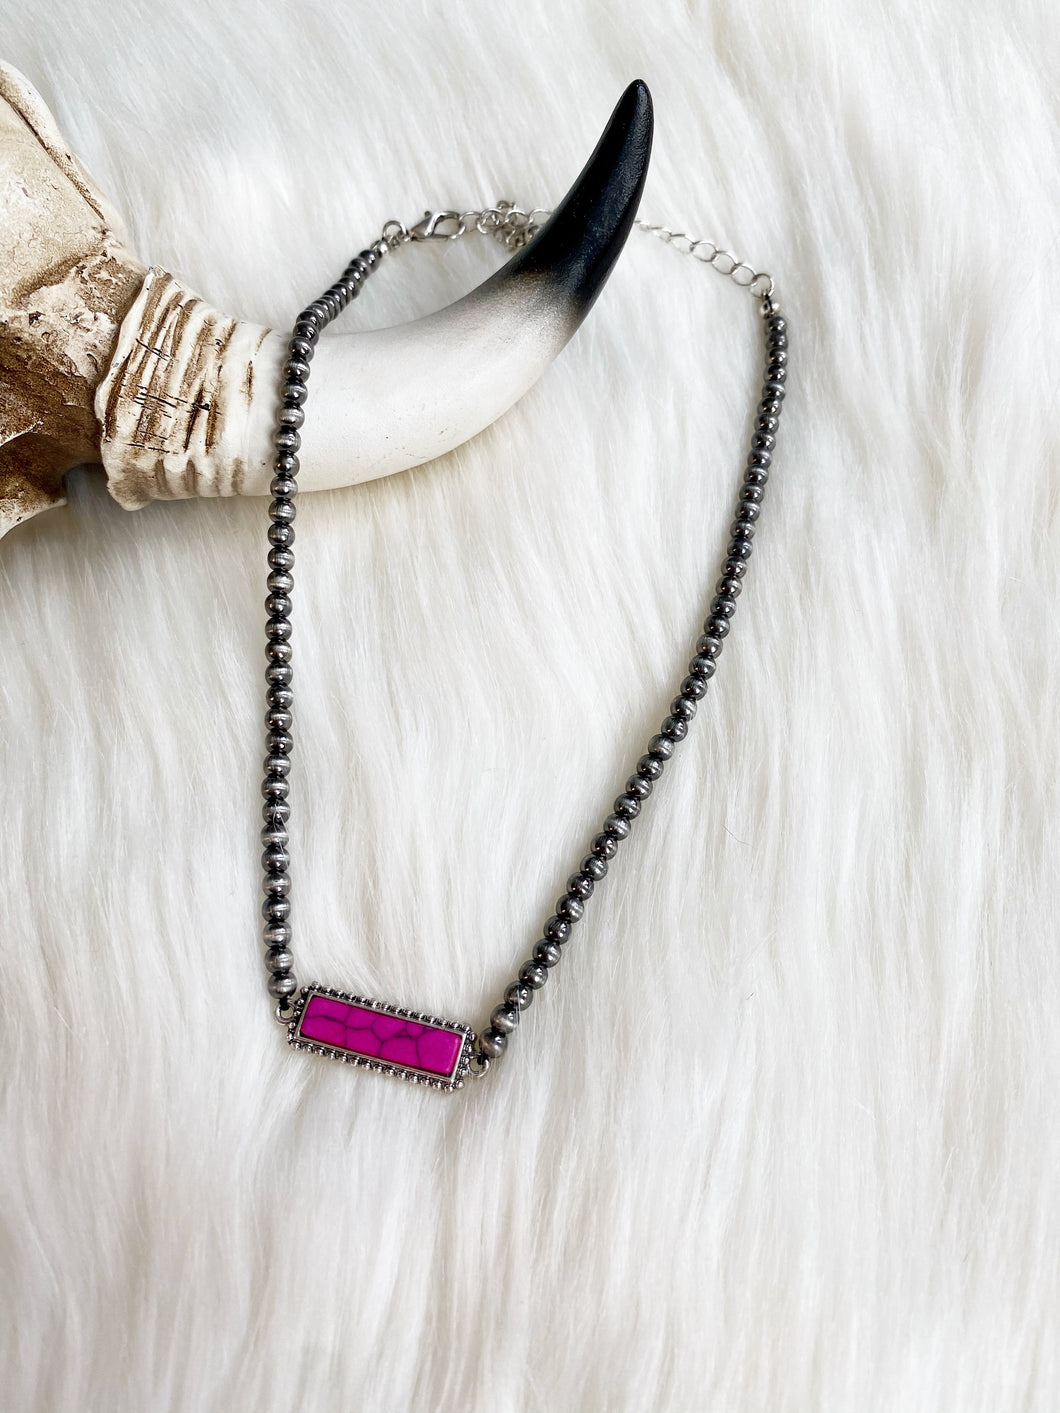 The Warsaw Pink Choker Necklace